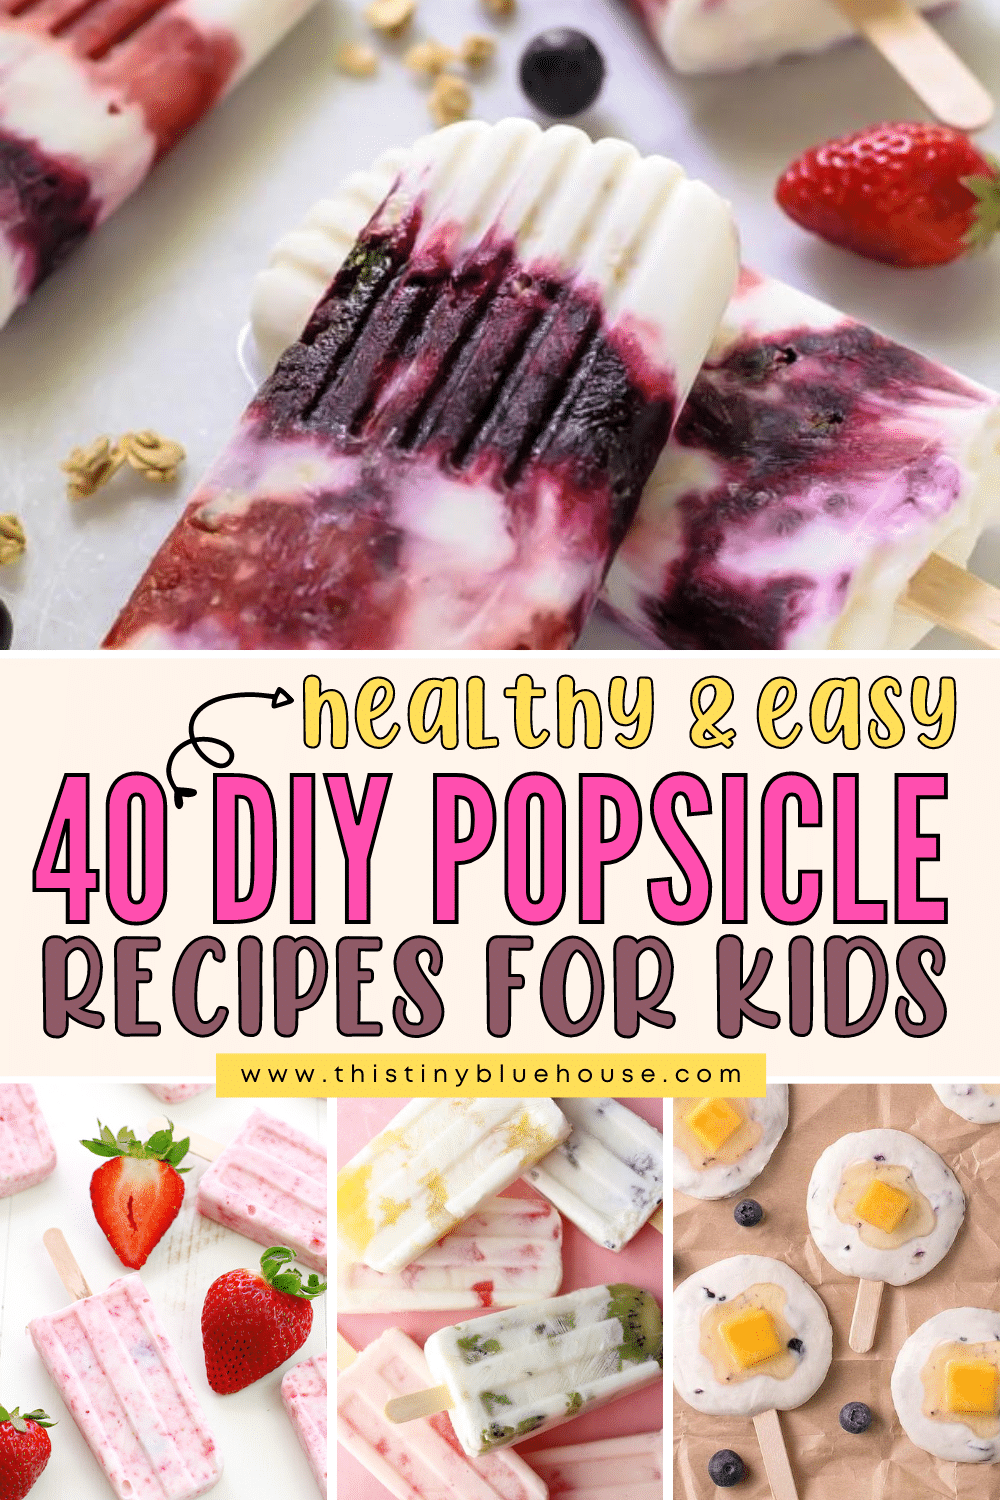 40 DIY Popsicle Recipes For Kids (Healthy & Guilt Free)